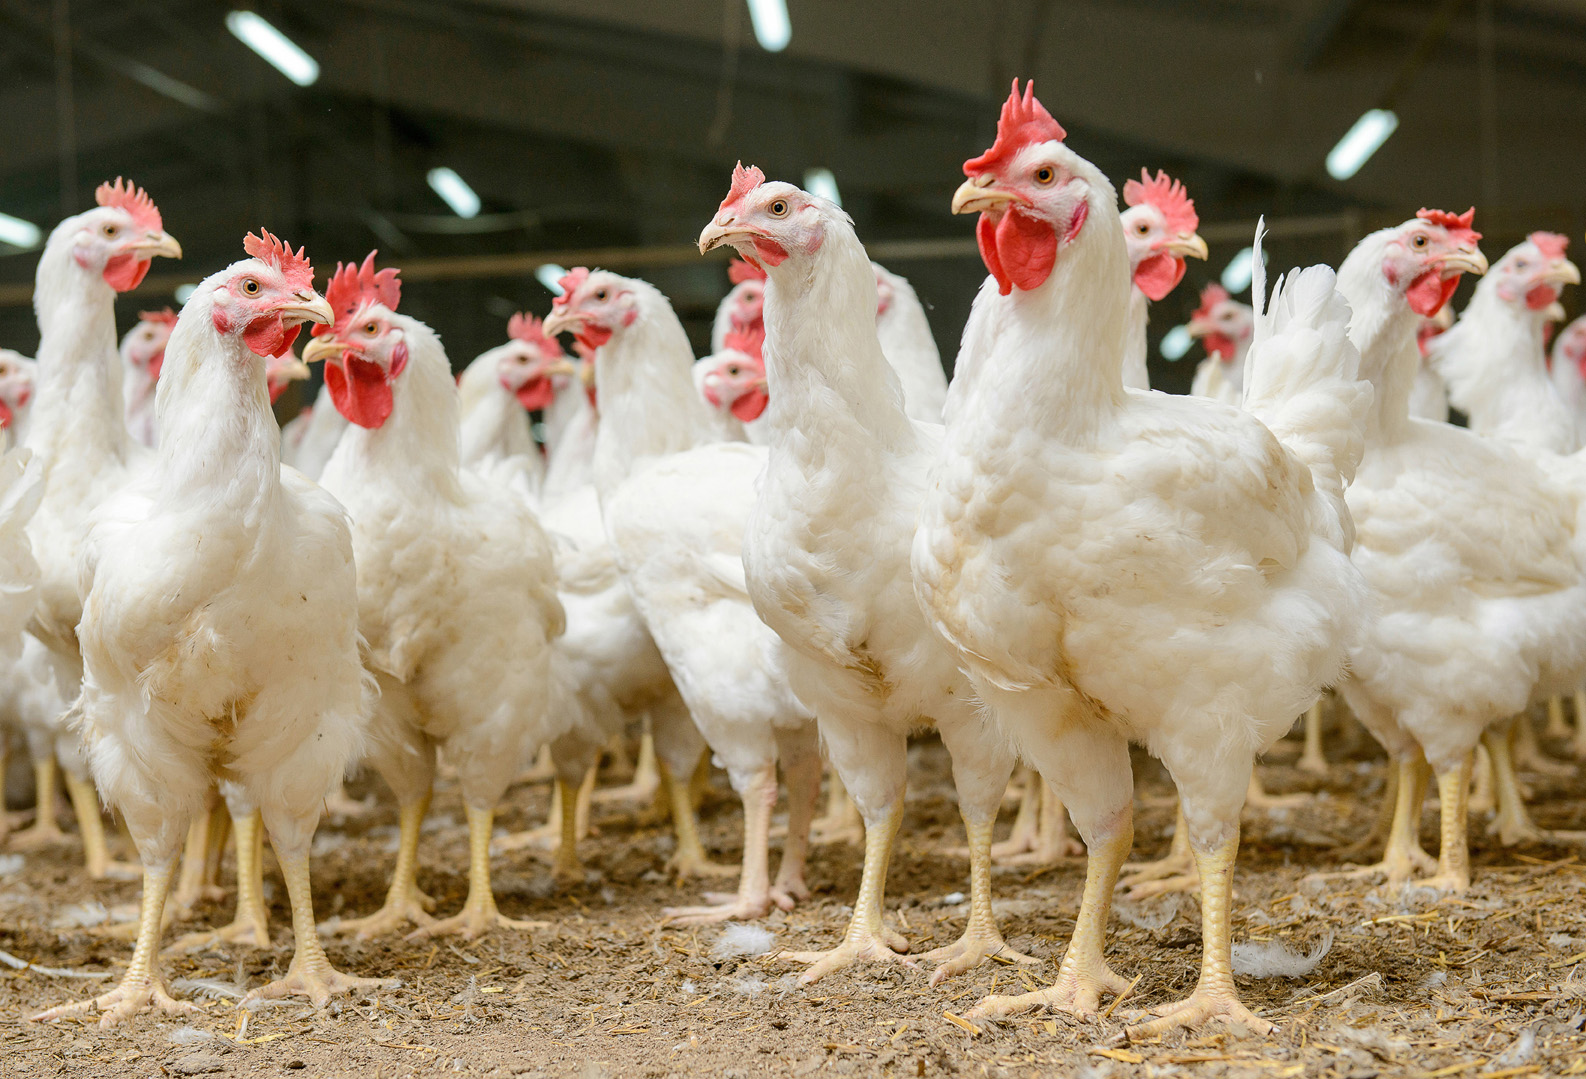 Bird flu roadshows to prepare for future outbreaks